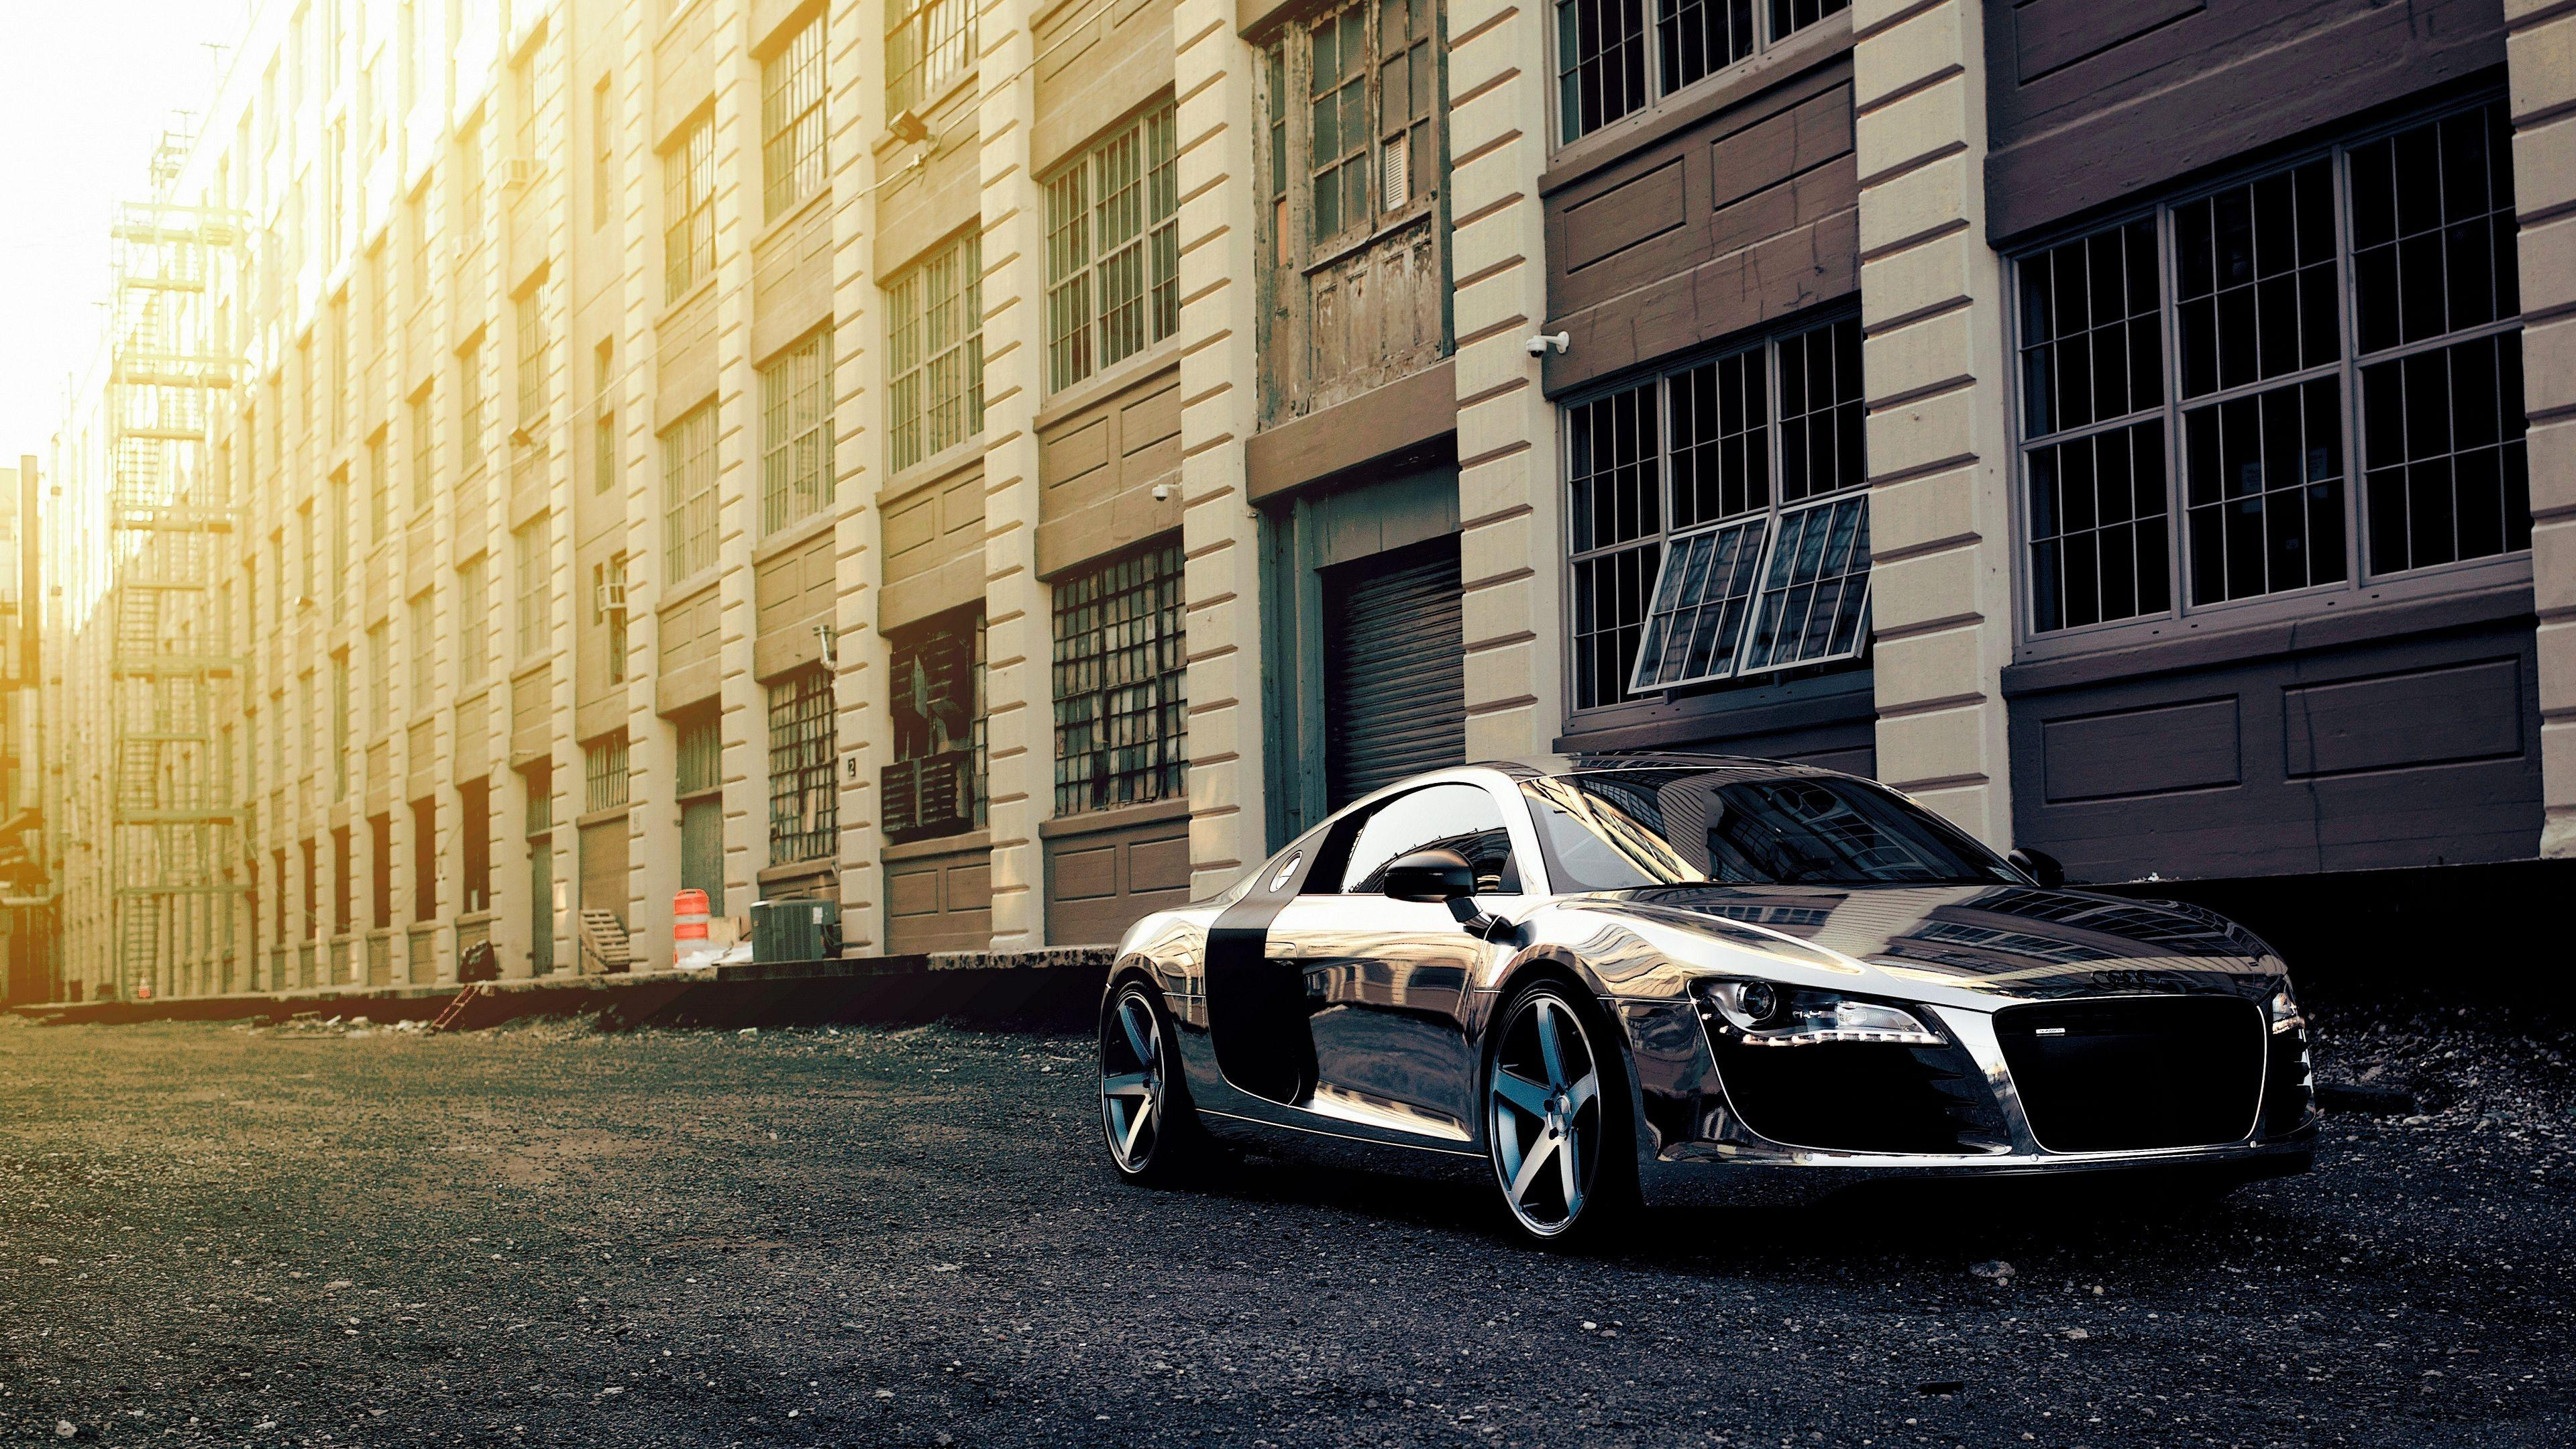 Chrome Cars Wallpapers Wallpaper Cave